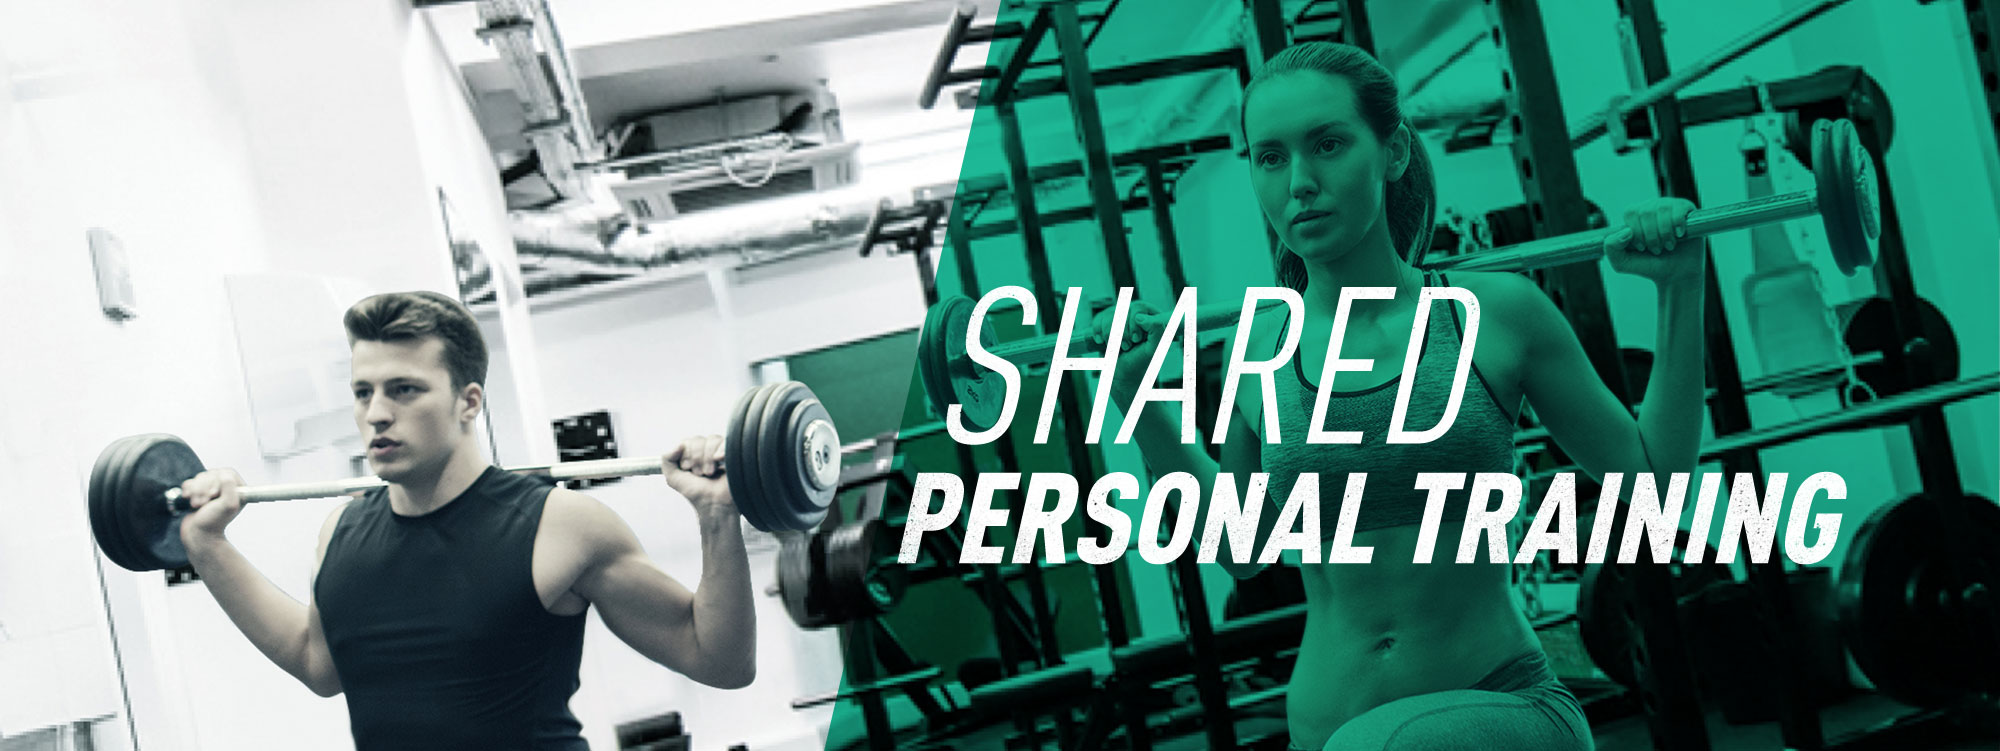 Personal Training Gym - Shared Personal Training - - Southwark Personal Trainers